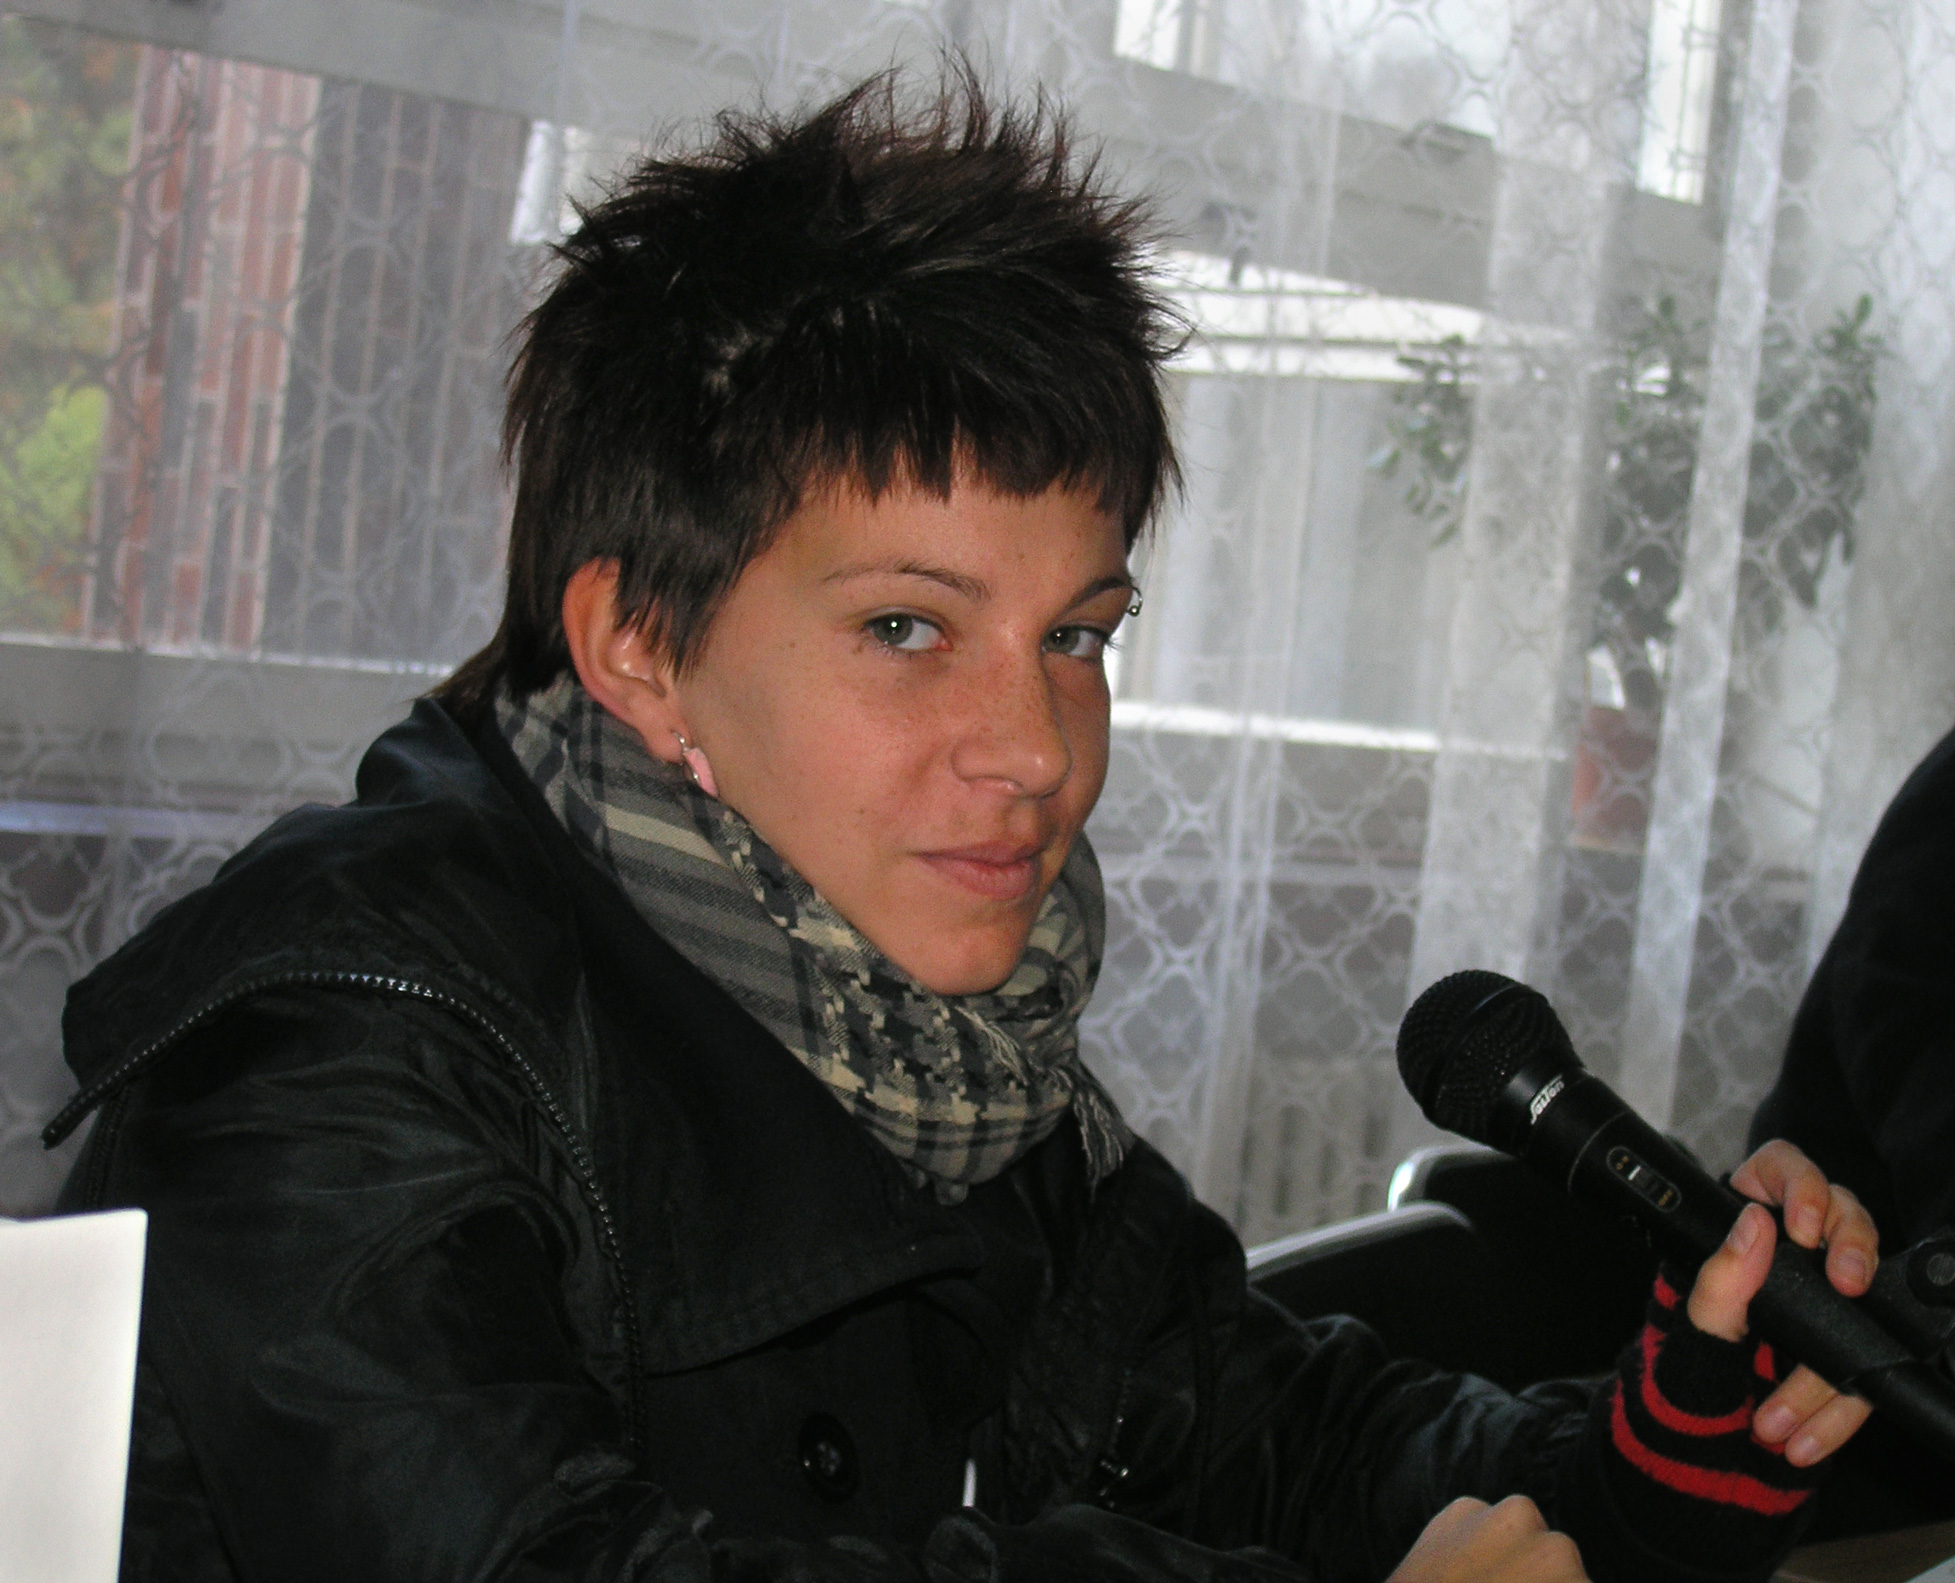 Petra Soukupová at the Autumn Book Fair in Havlíčkův Brod, Czech Republic in 2011.